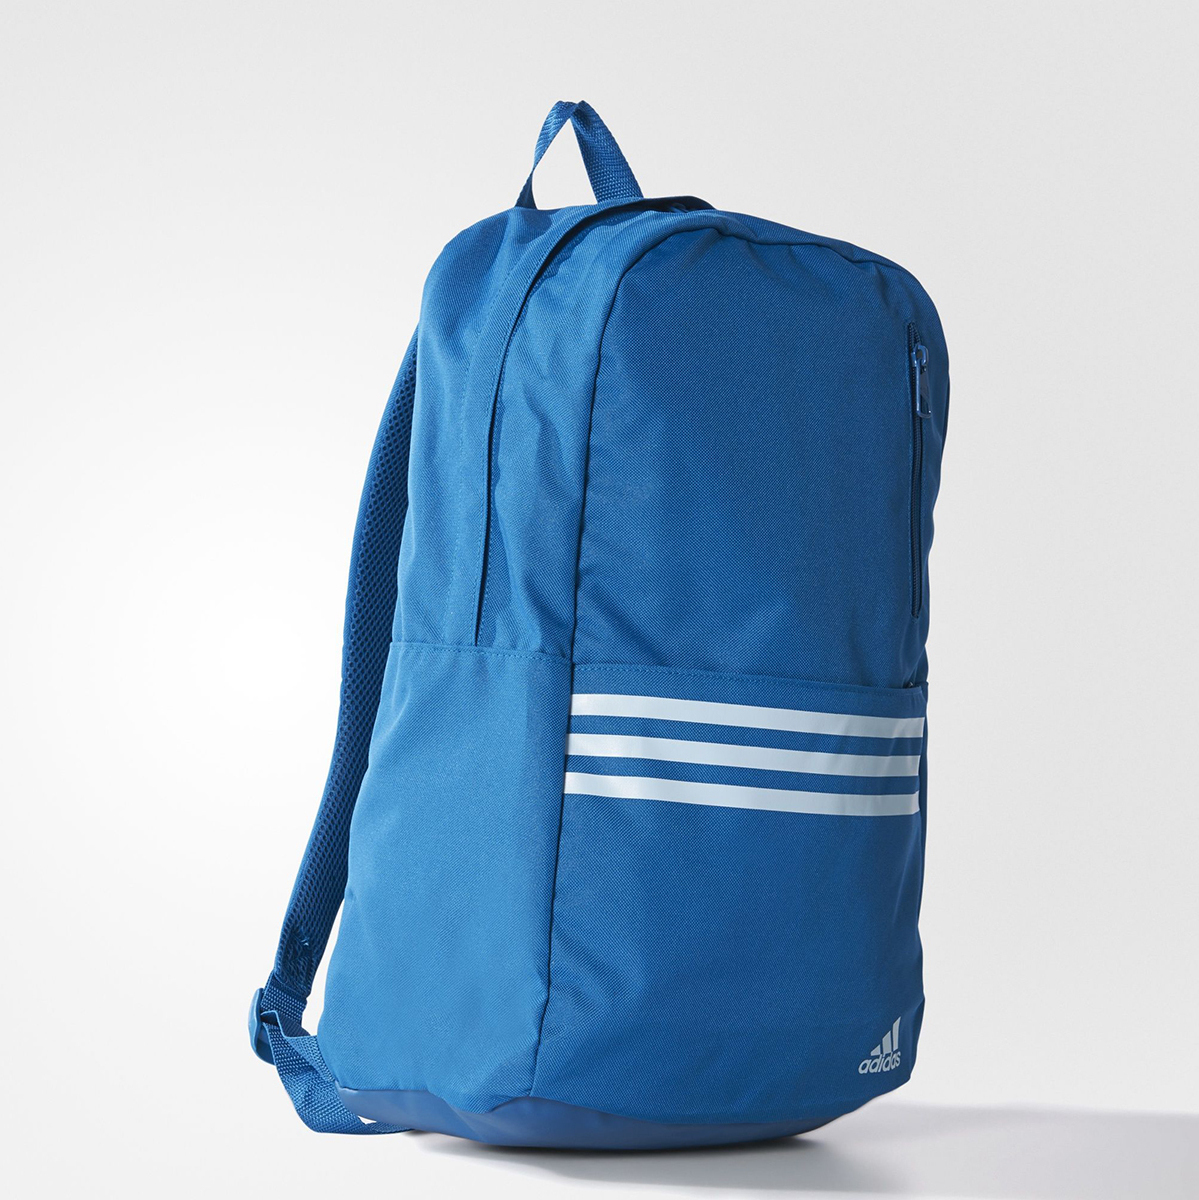 fc8d221839 Adidas Versatile Backpack 3 Stripes AY5121 - Skroutz.gr